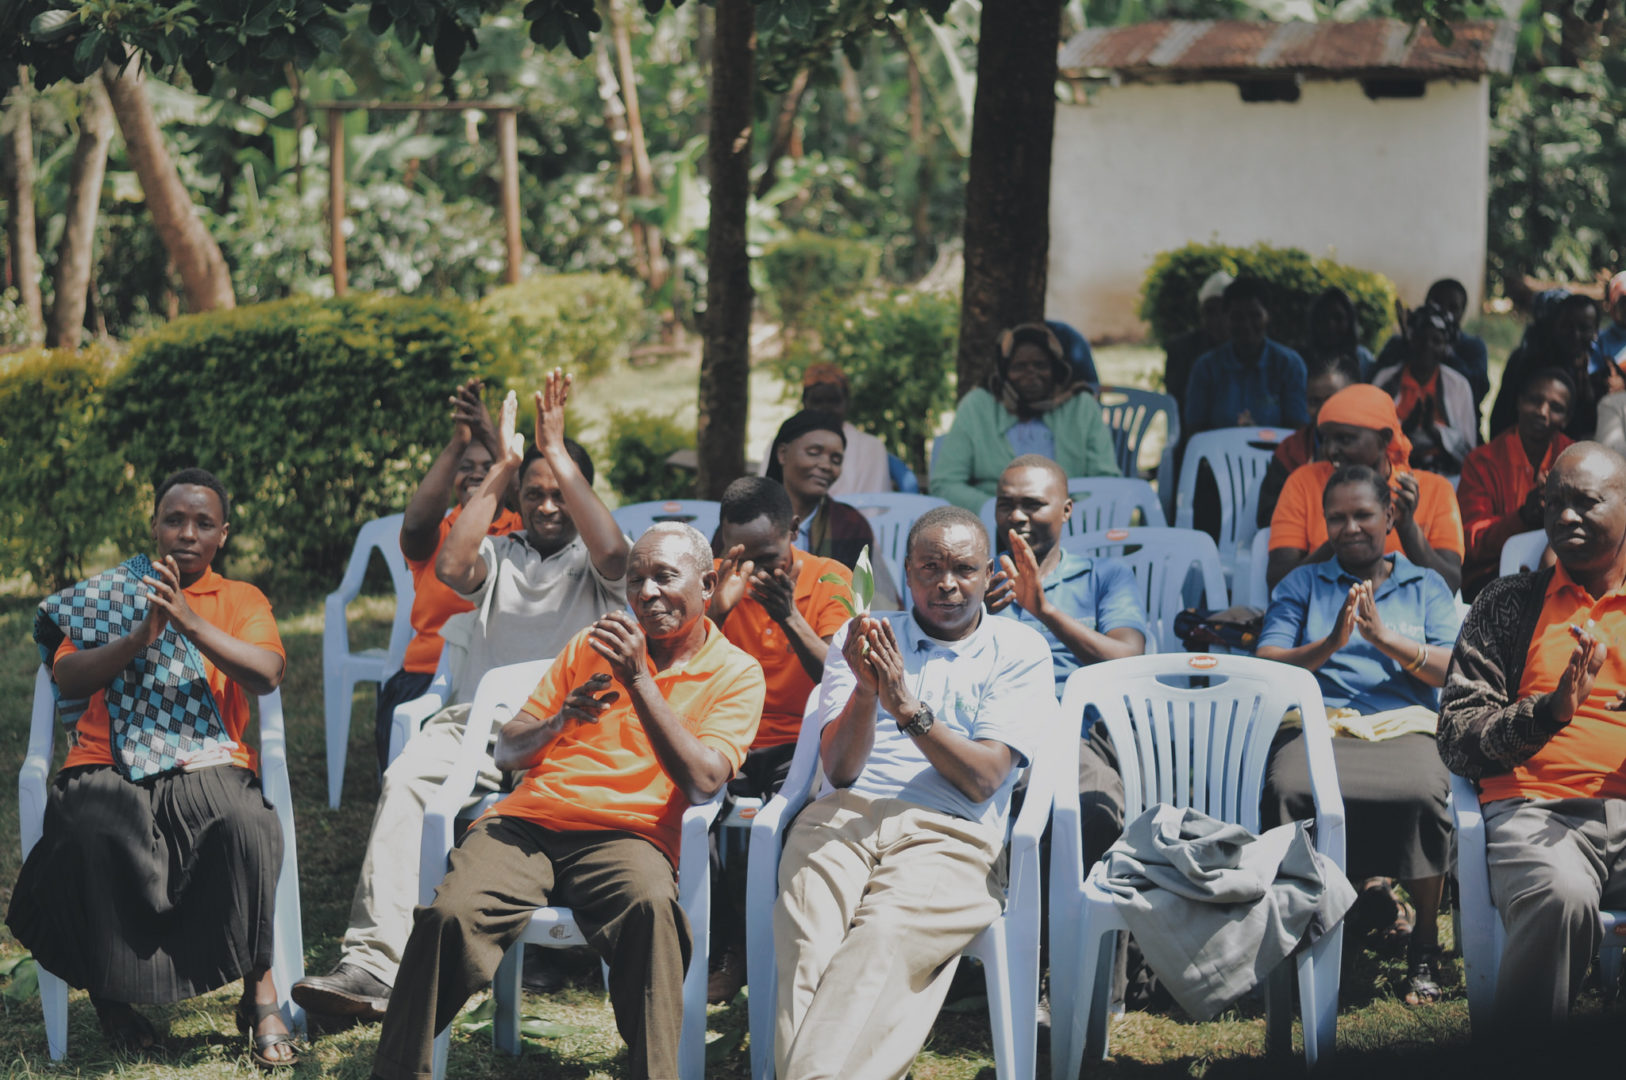 Many group meetings in Tanzania are full of visible joy